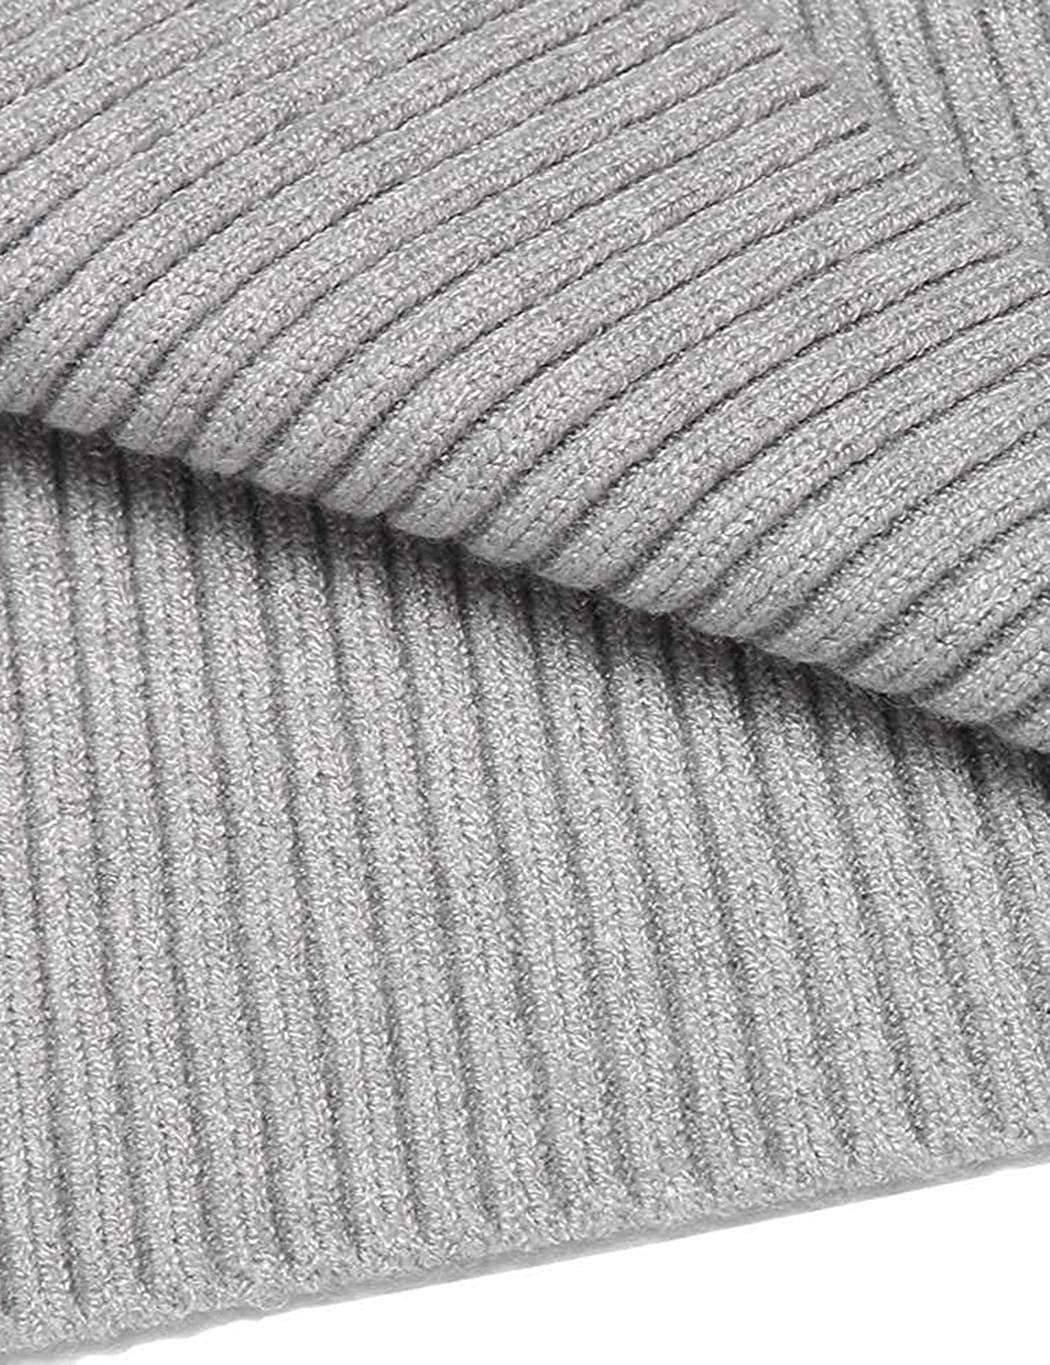 wumedy Neudas Men Casual Turtle Collar Long Sleeve Solid Knitted Pullover Sweater Pullovers